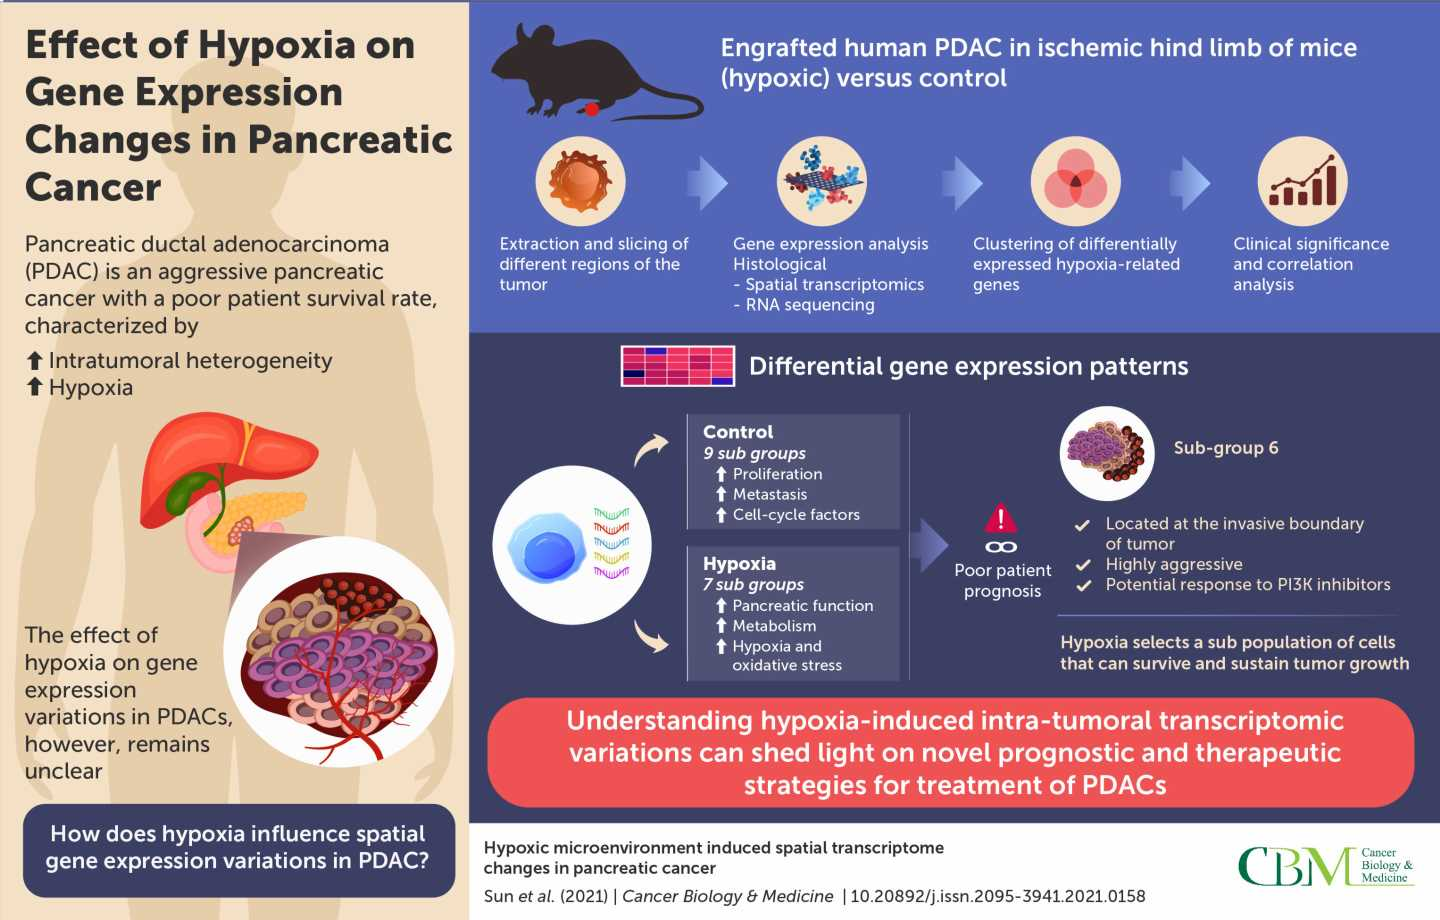 How hypoxia influences spatial gene expression variations in pancreatic cancer